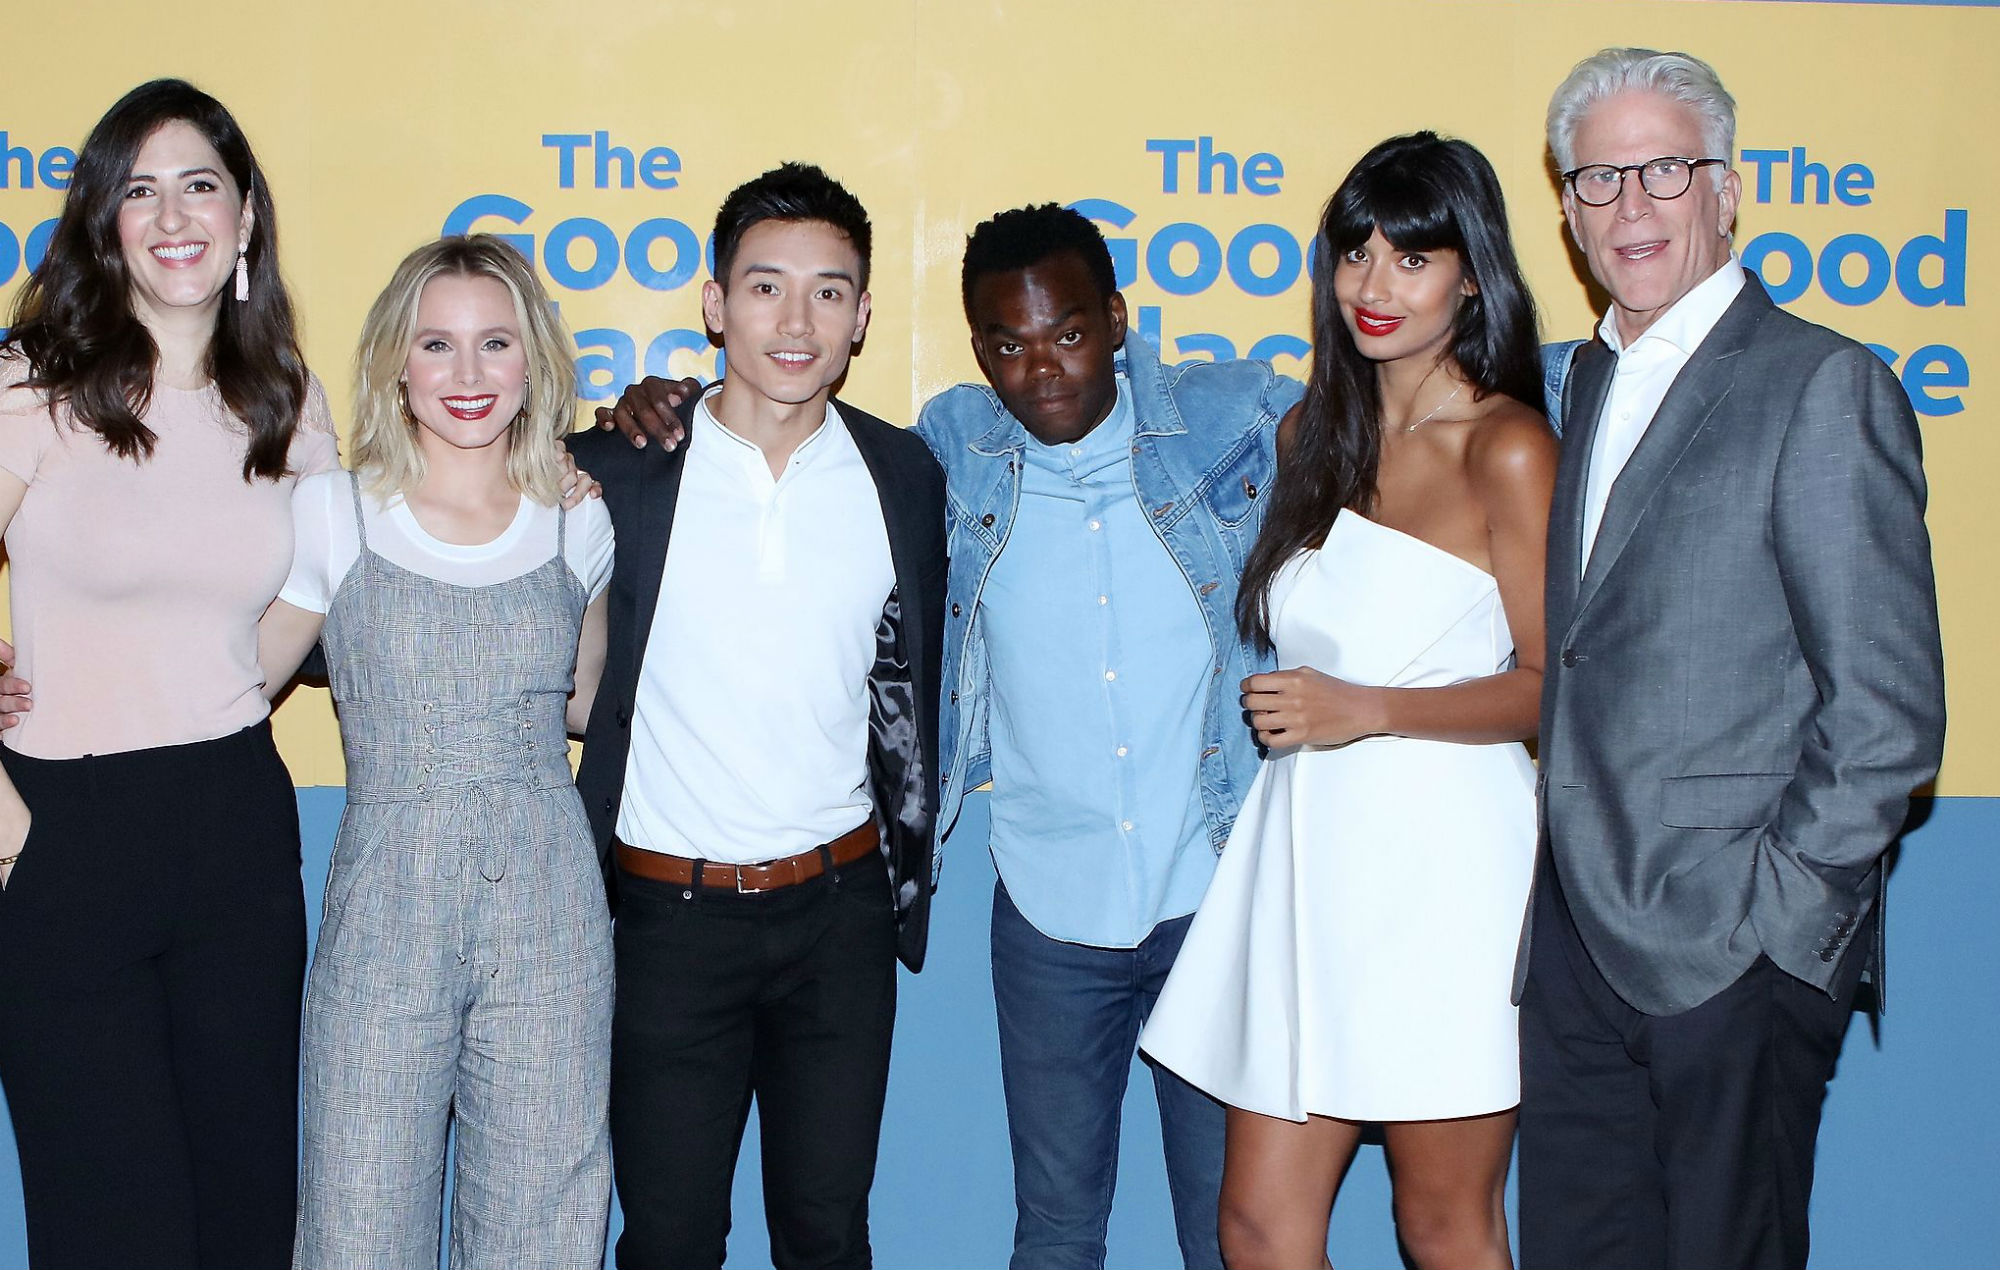 'The Good Place' cast to host the Oscars in character: the ...